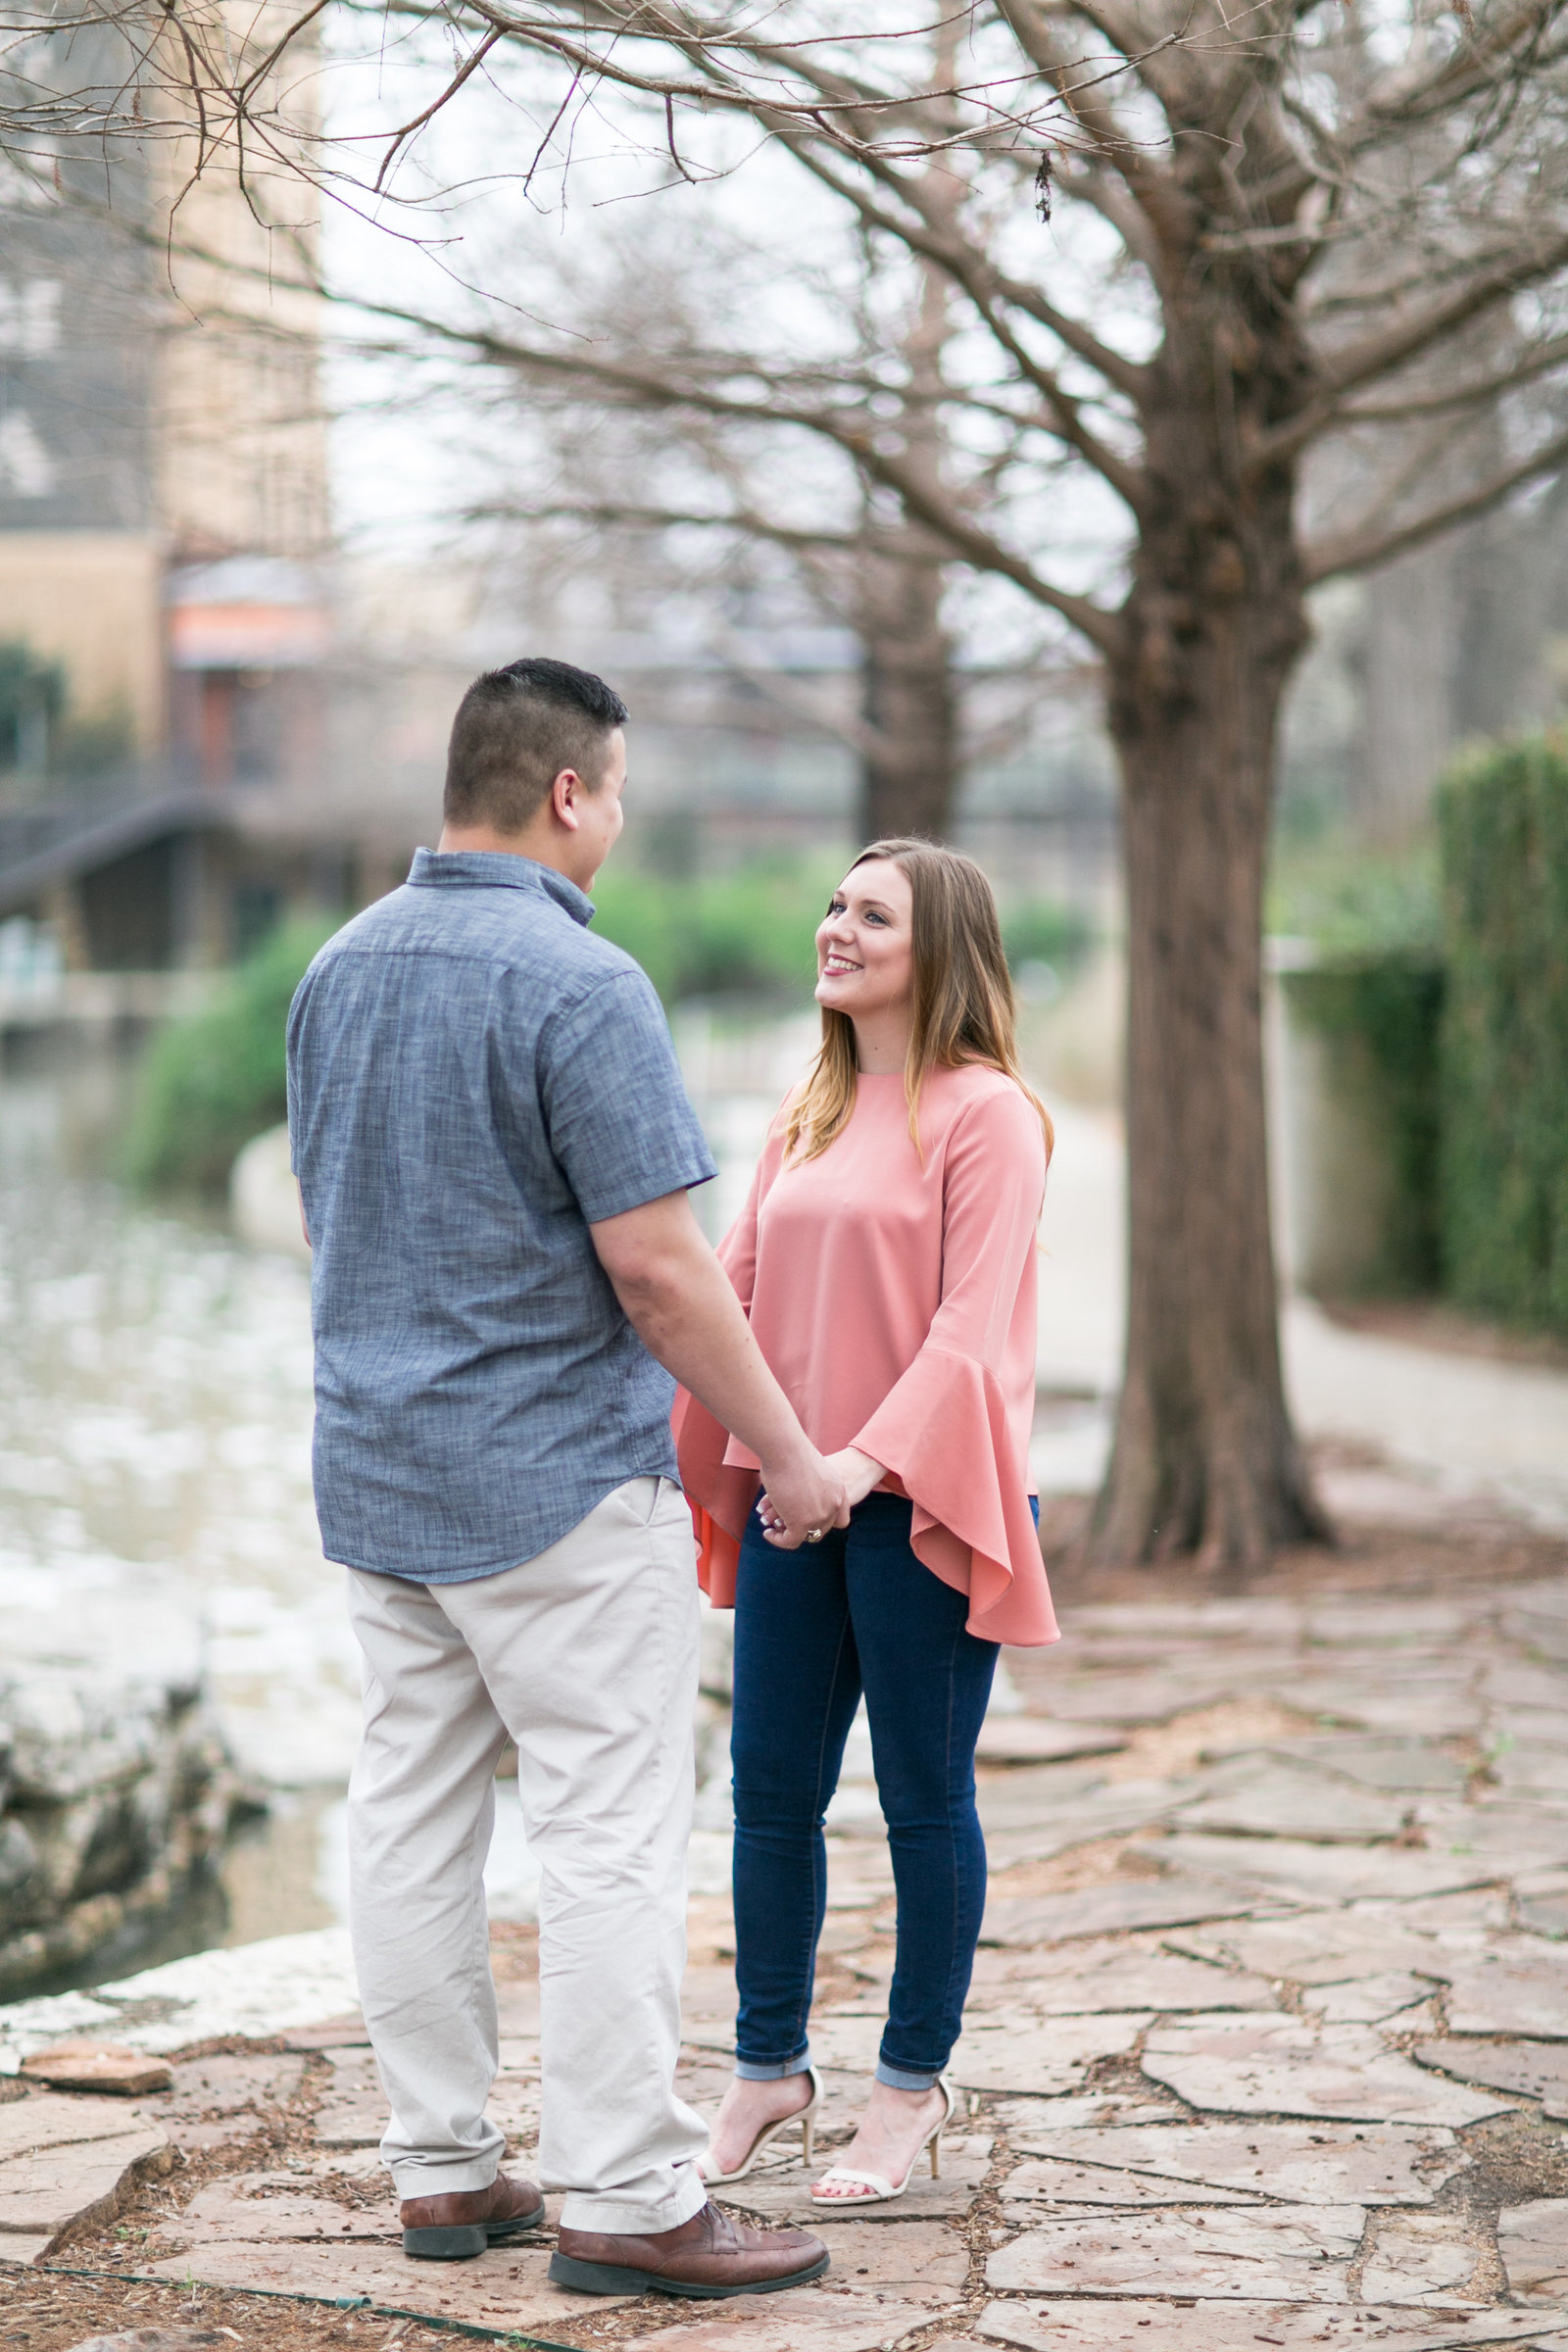 pearl-brewery-stables-san-antonio-river-walk-engagement-session-photo-31